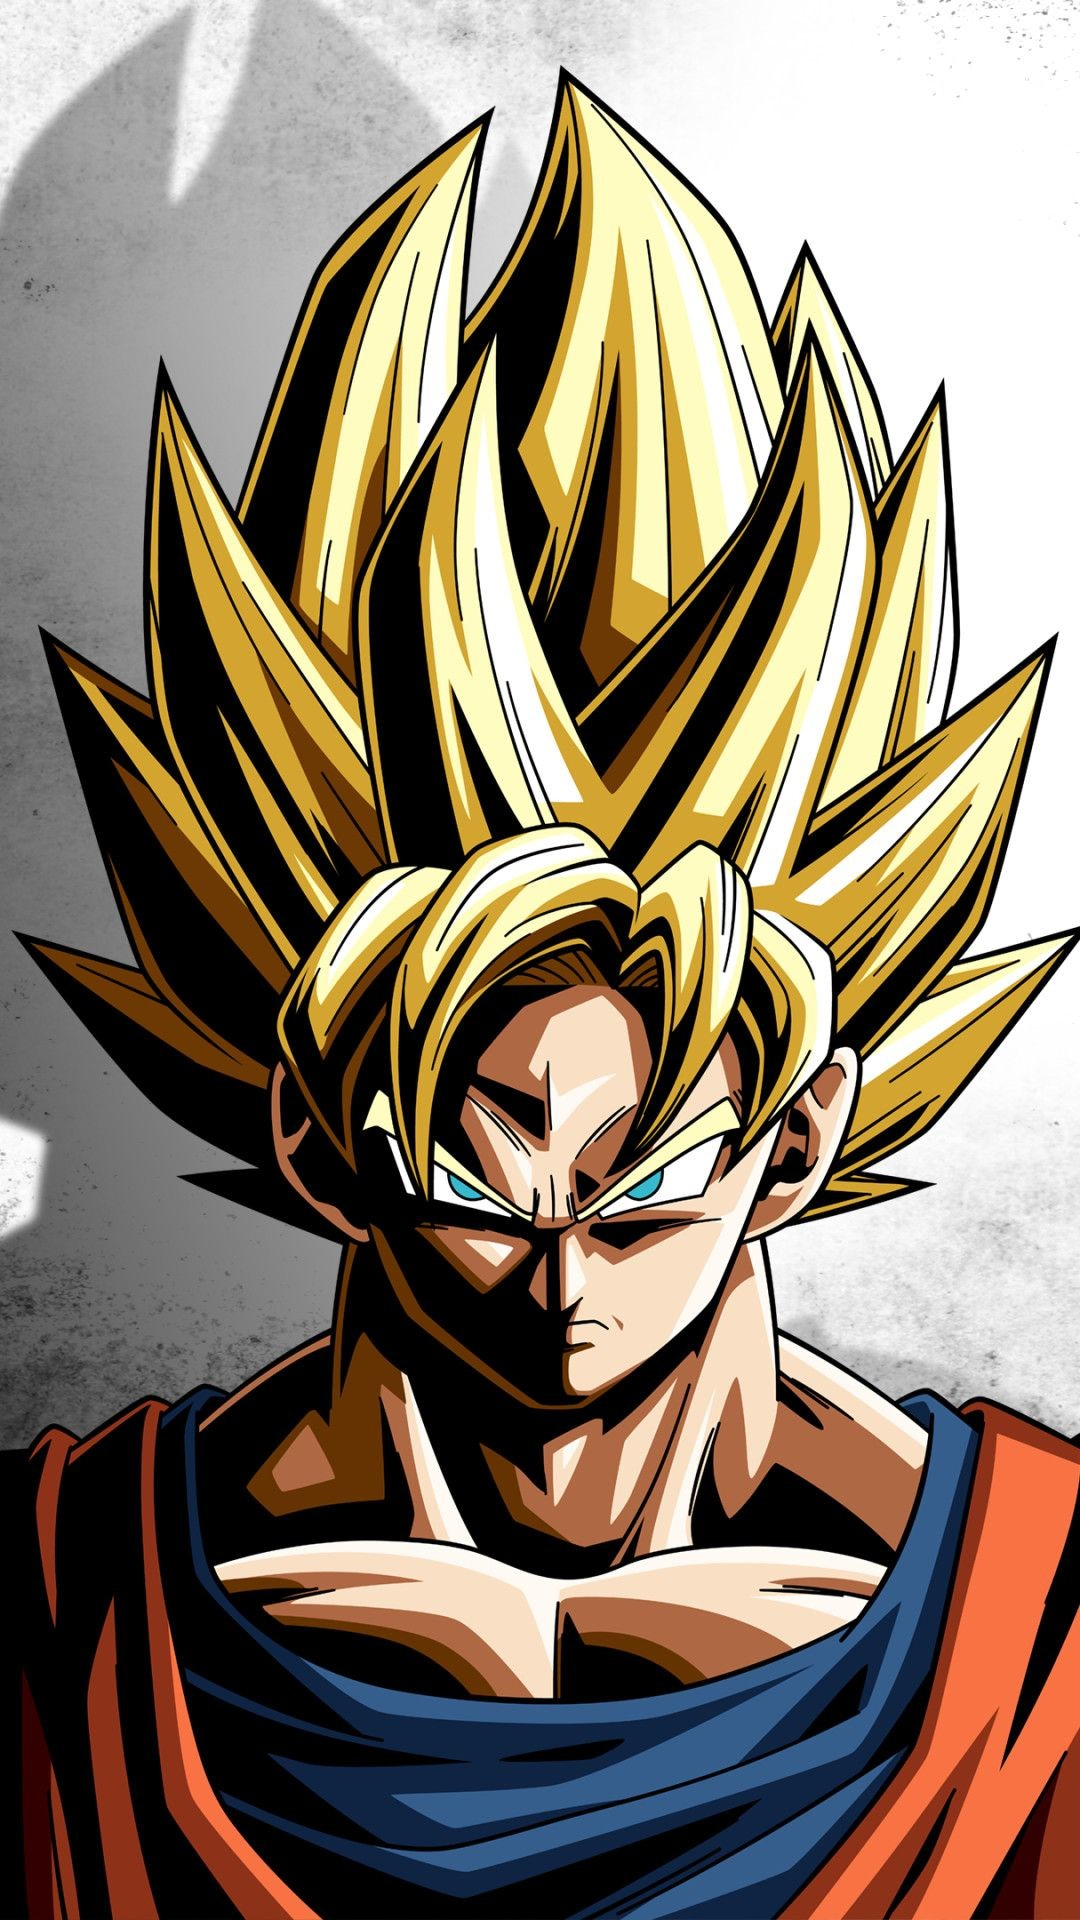 Res: 1080x1920, Dragon Ball Z | Anime iPhone wallpapers